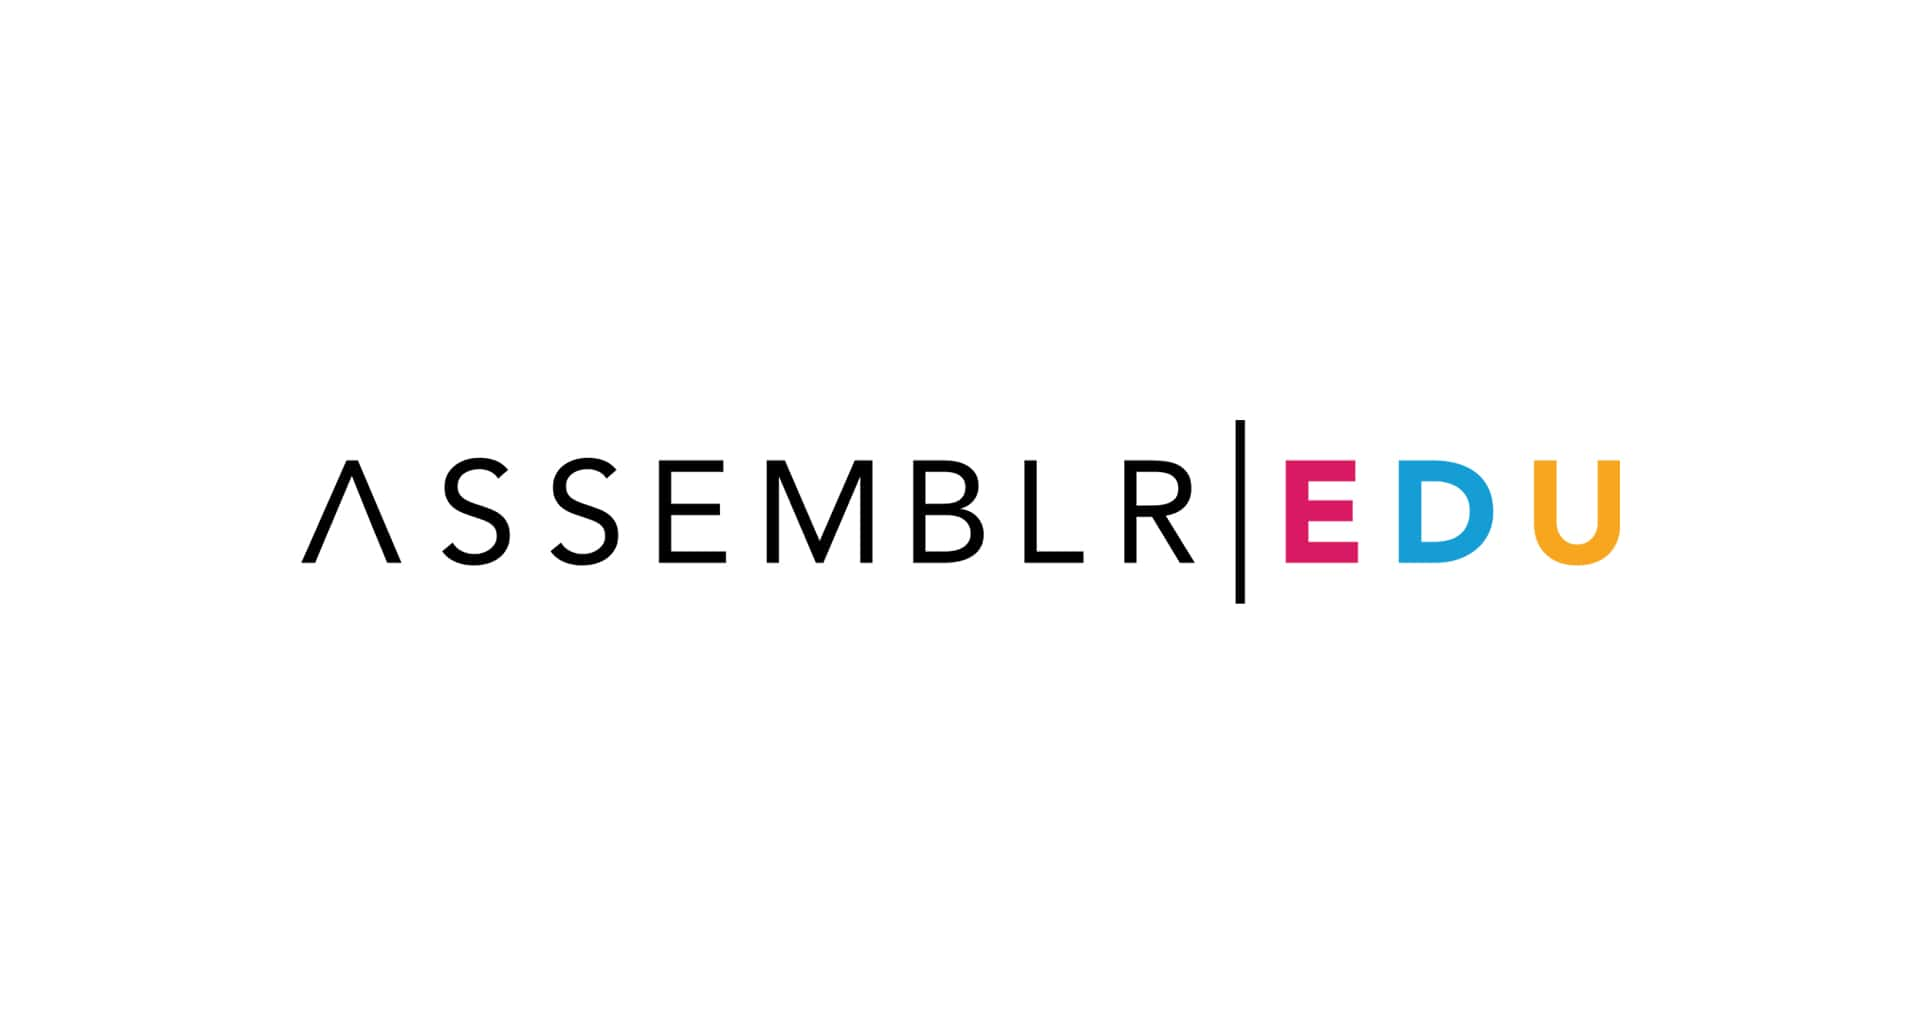 Learning Resources | Assemblr - Access our guides, booklets, and tutorial videos for FREE! Everything you need to know on how to use Assemblr, so you can optimize your AR experiences.